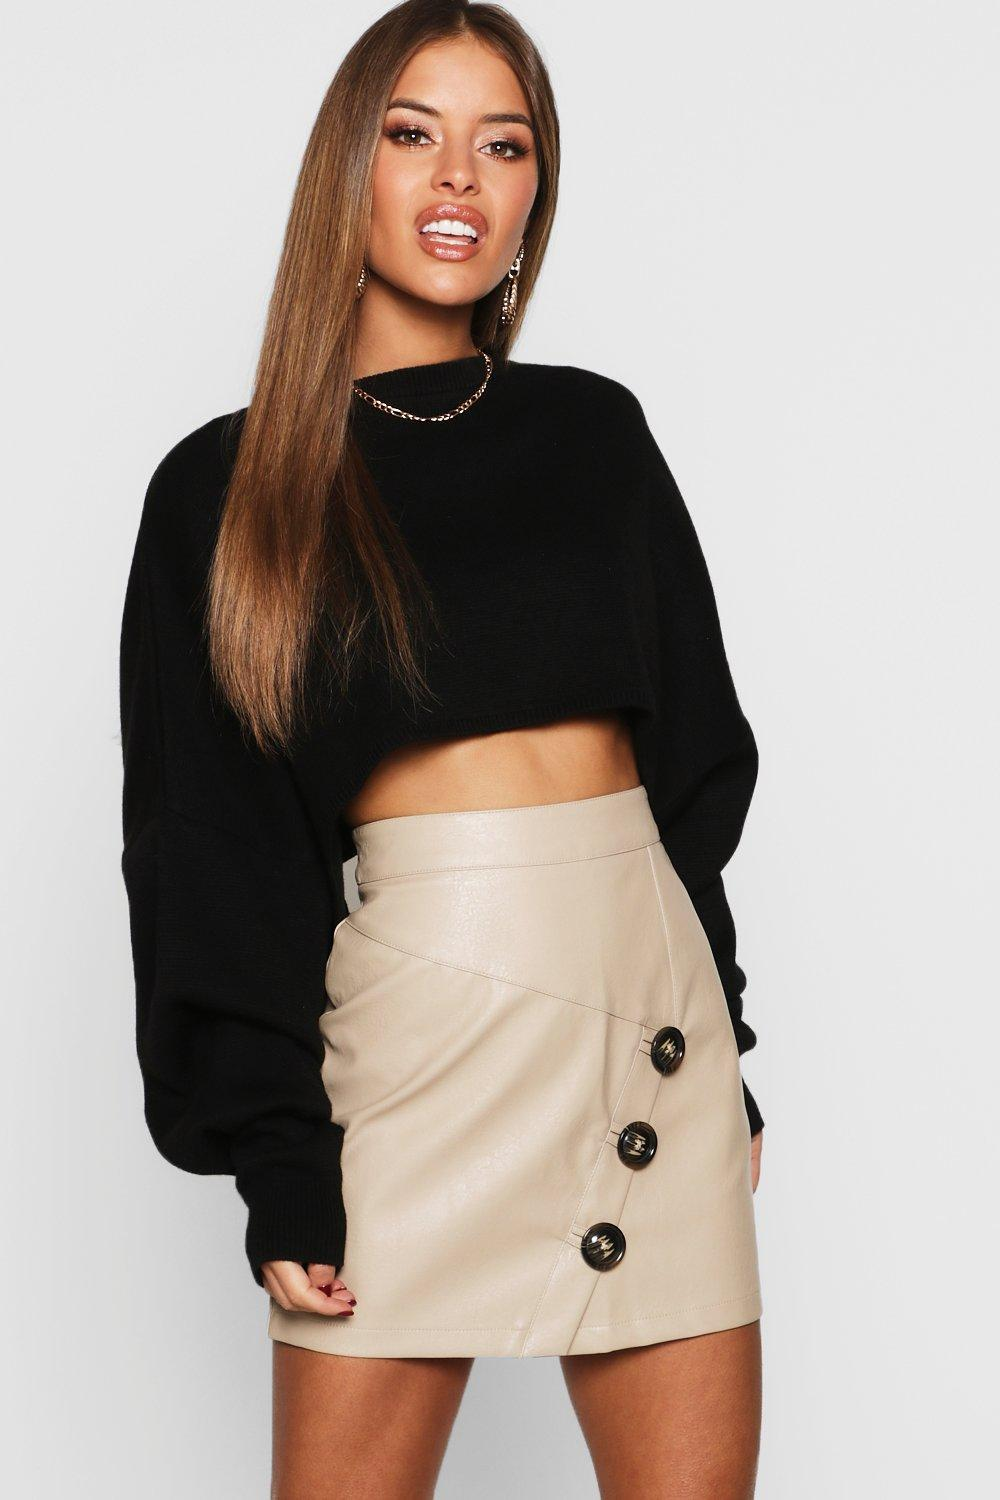 79539bfbf5 Boohoo Petite Mock Horn Button Faux Leather Mini Skirt in Black - Lyst